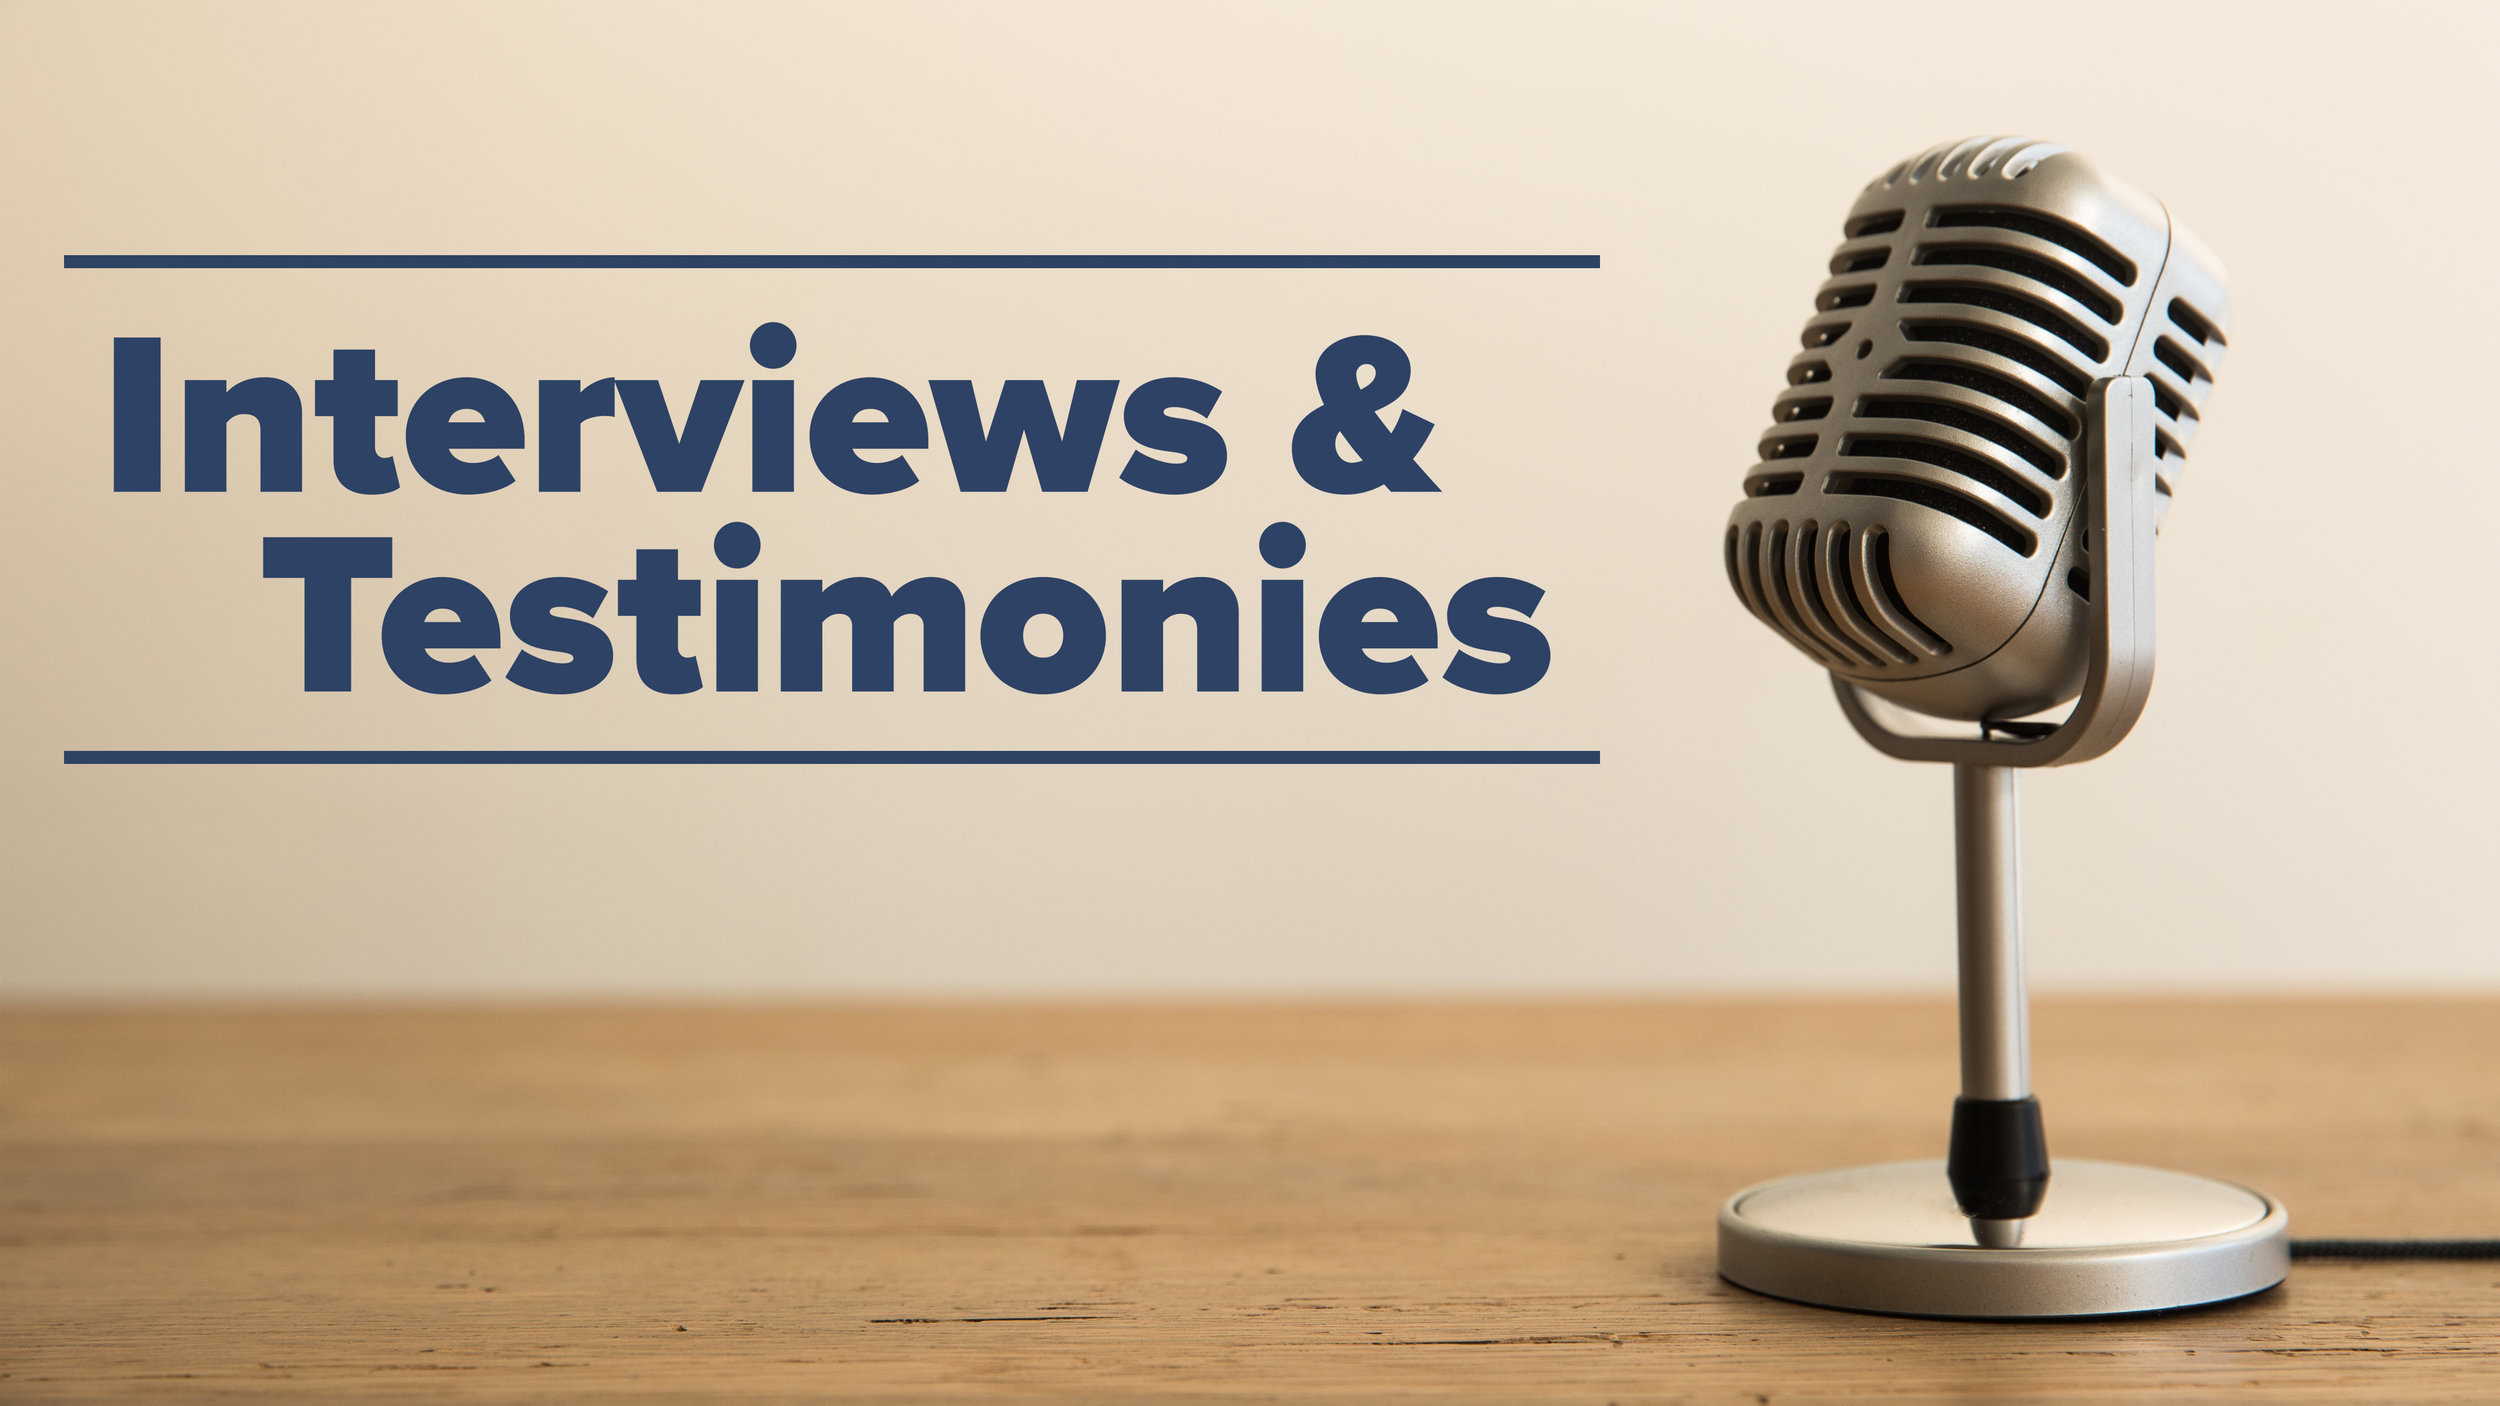 Interviews and Testimonies Header.jpg